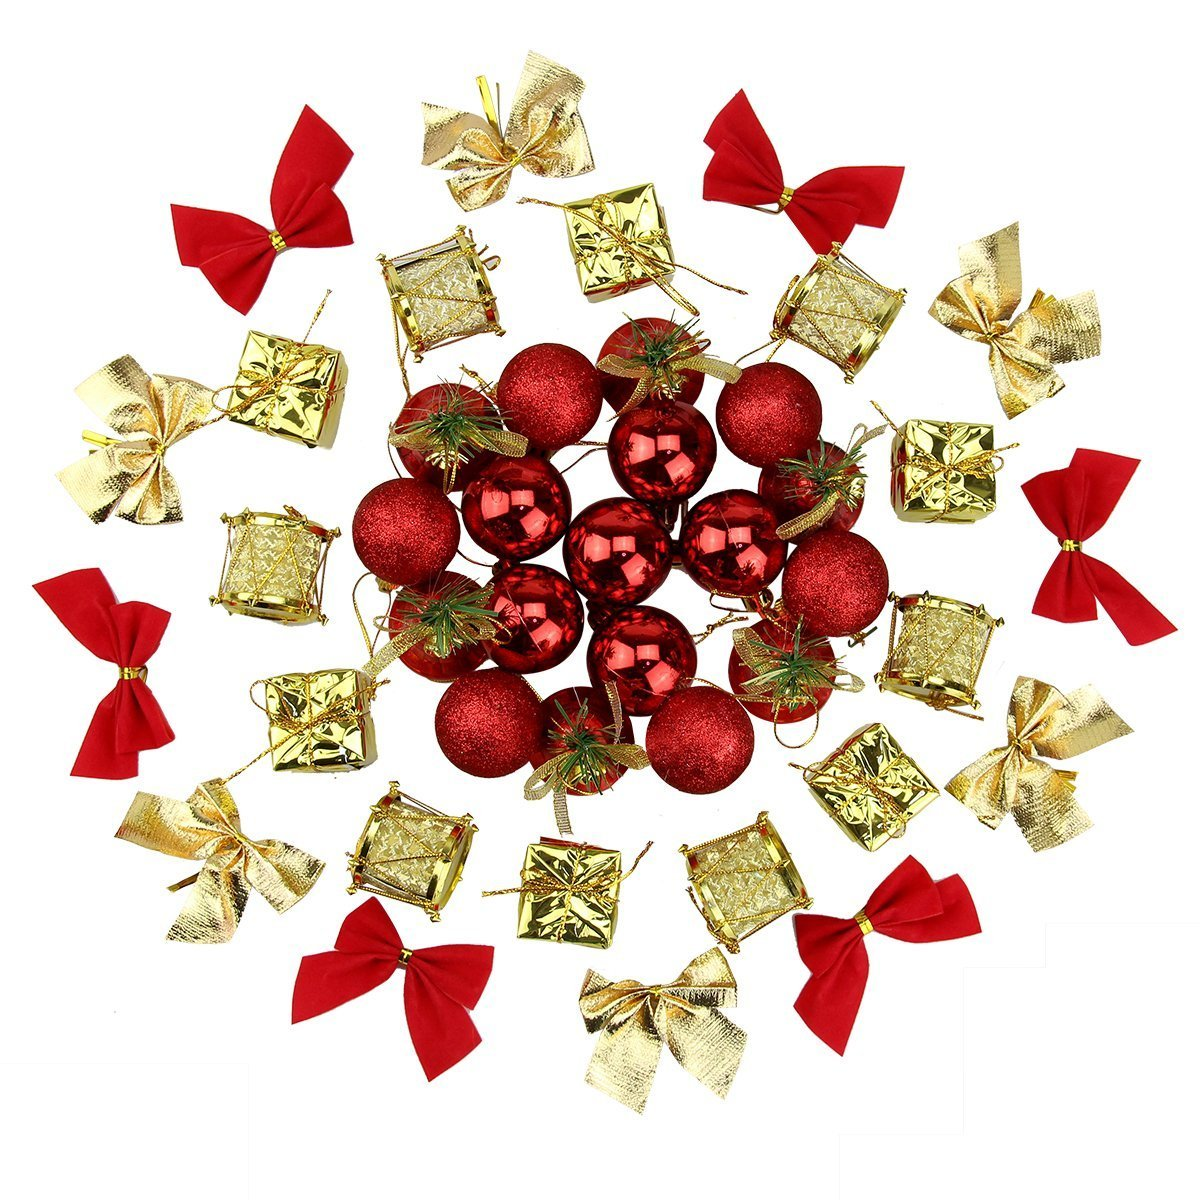 Naisidier Christmas Tree Ornaments Hanging Decoration Pendant Kit Including Christams Balls, Bowknots, Gifts Ornaments, Merry Christmas Letters, Drums and Christams Red Bells (44Pcs)